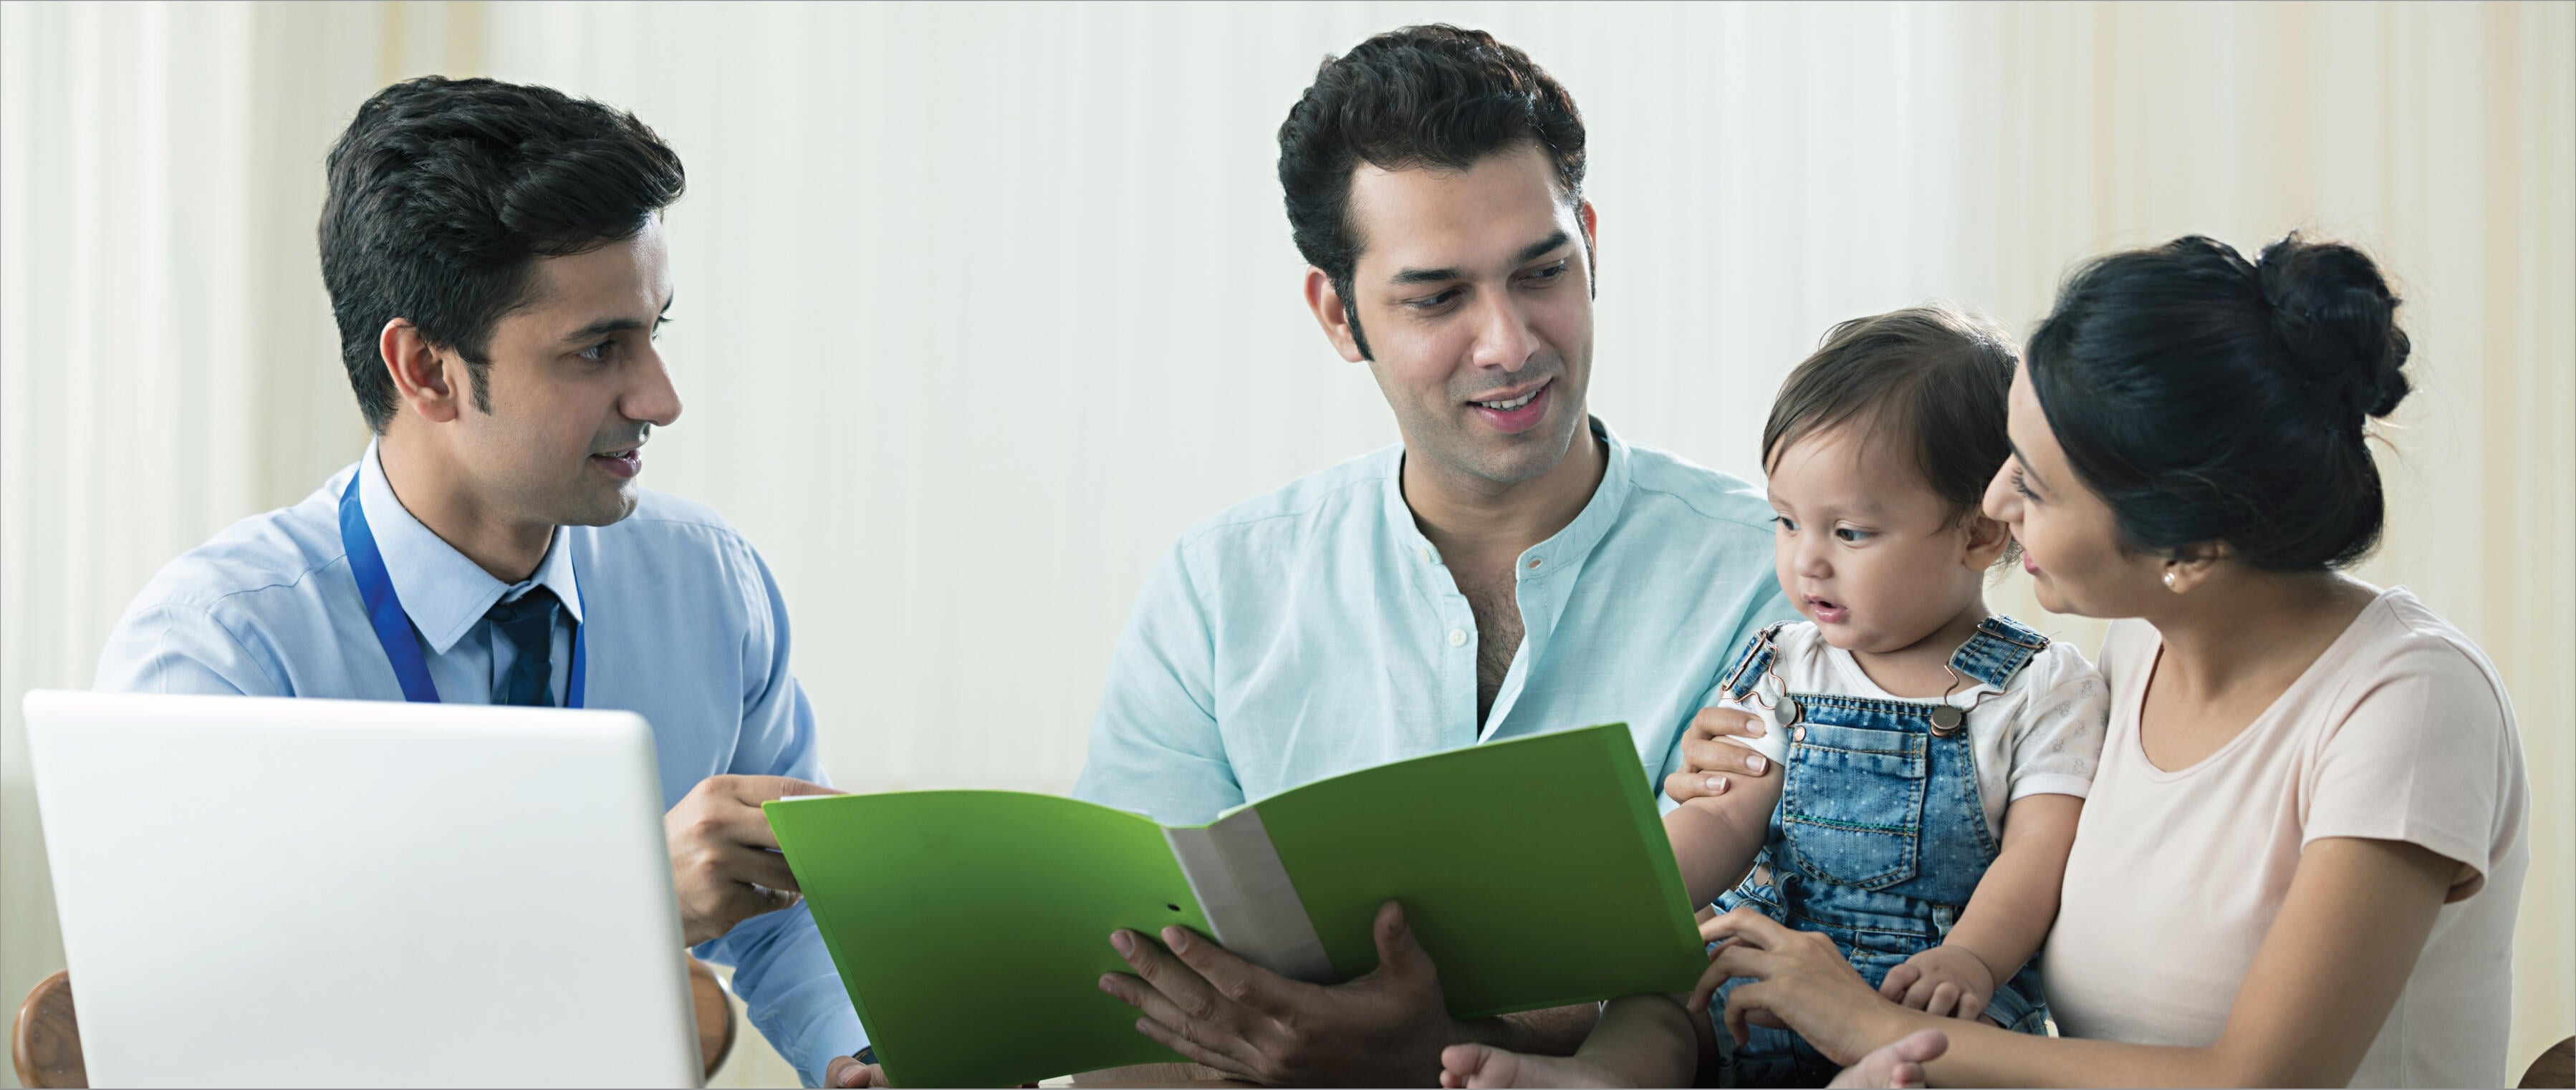 What are the benefits of getting a loan against a Life Insurance policy?